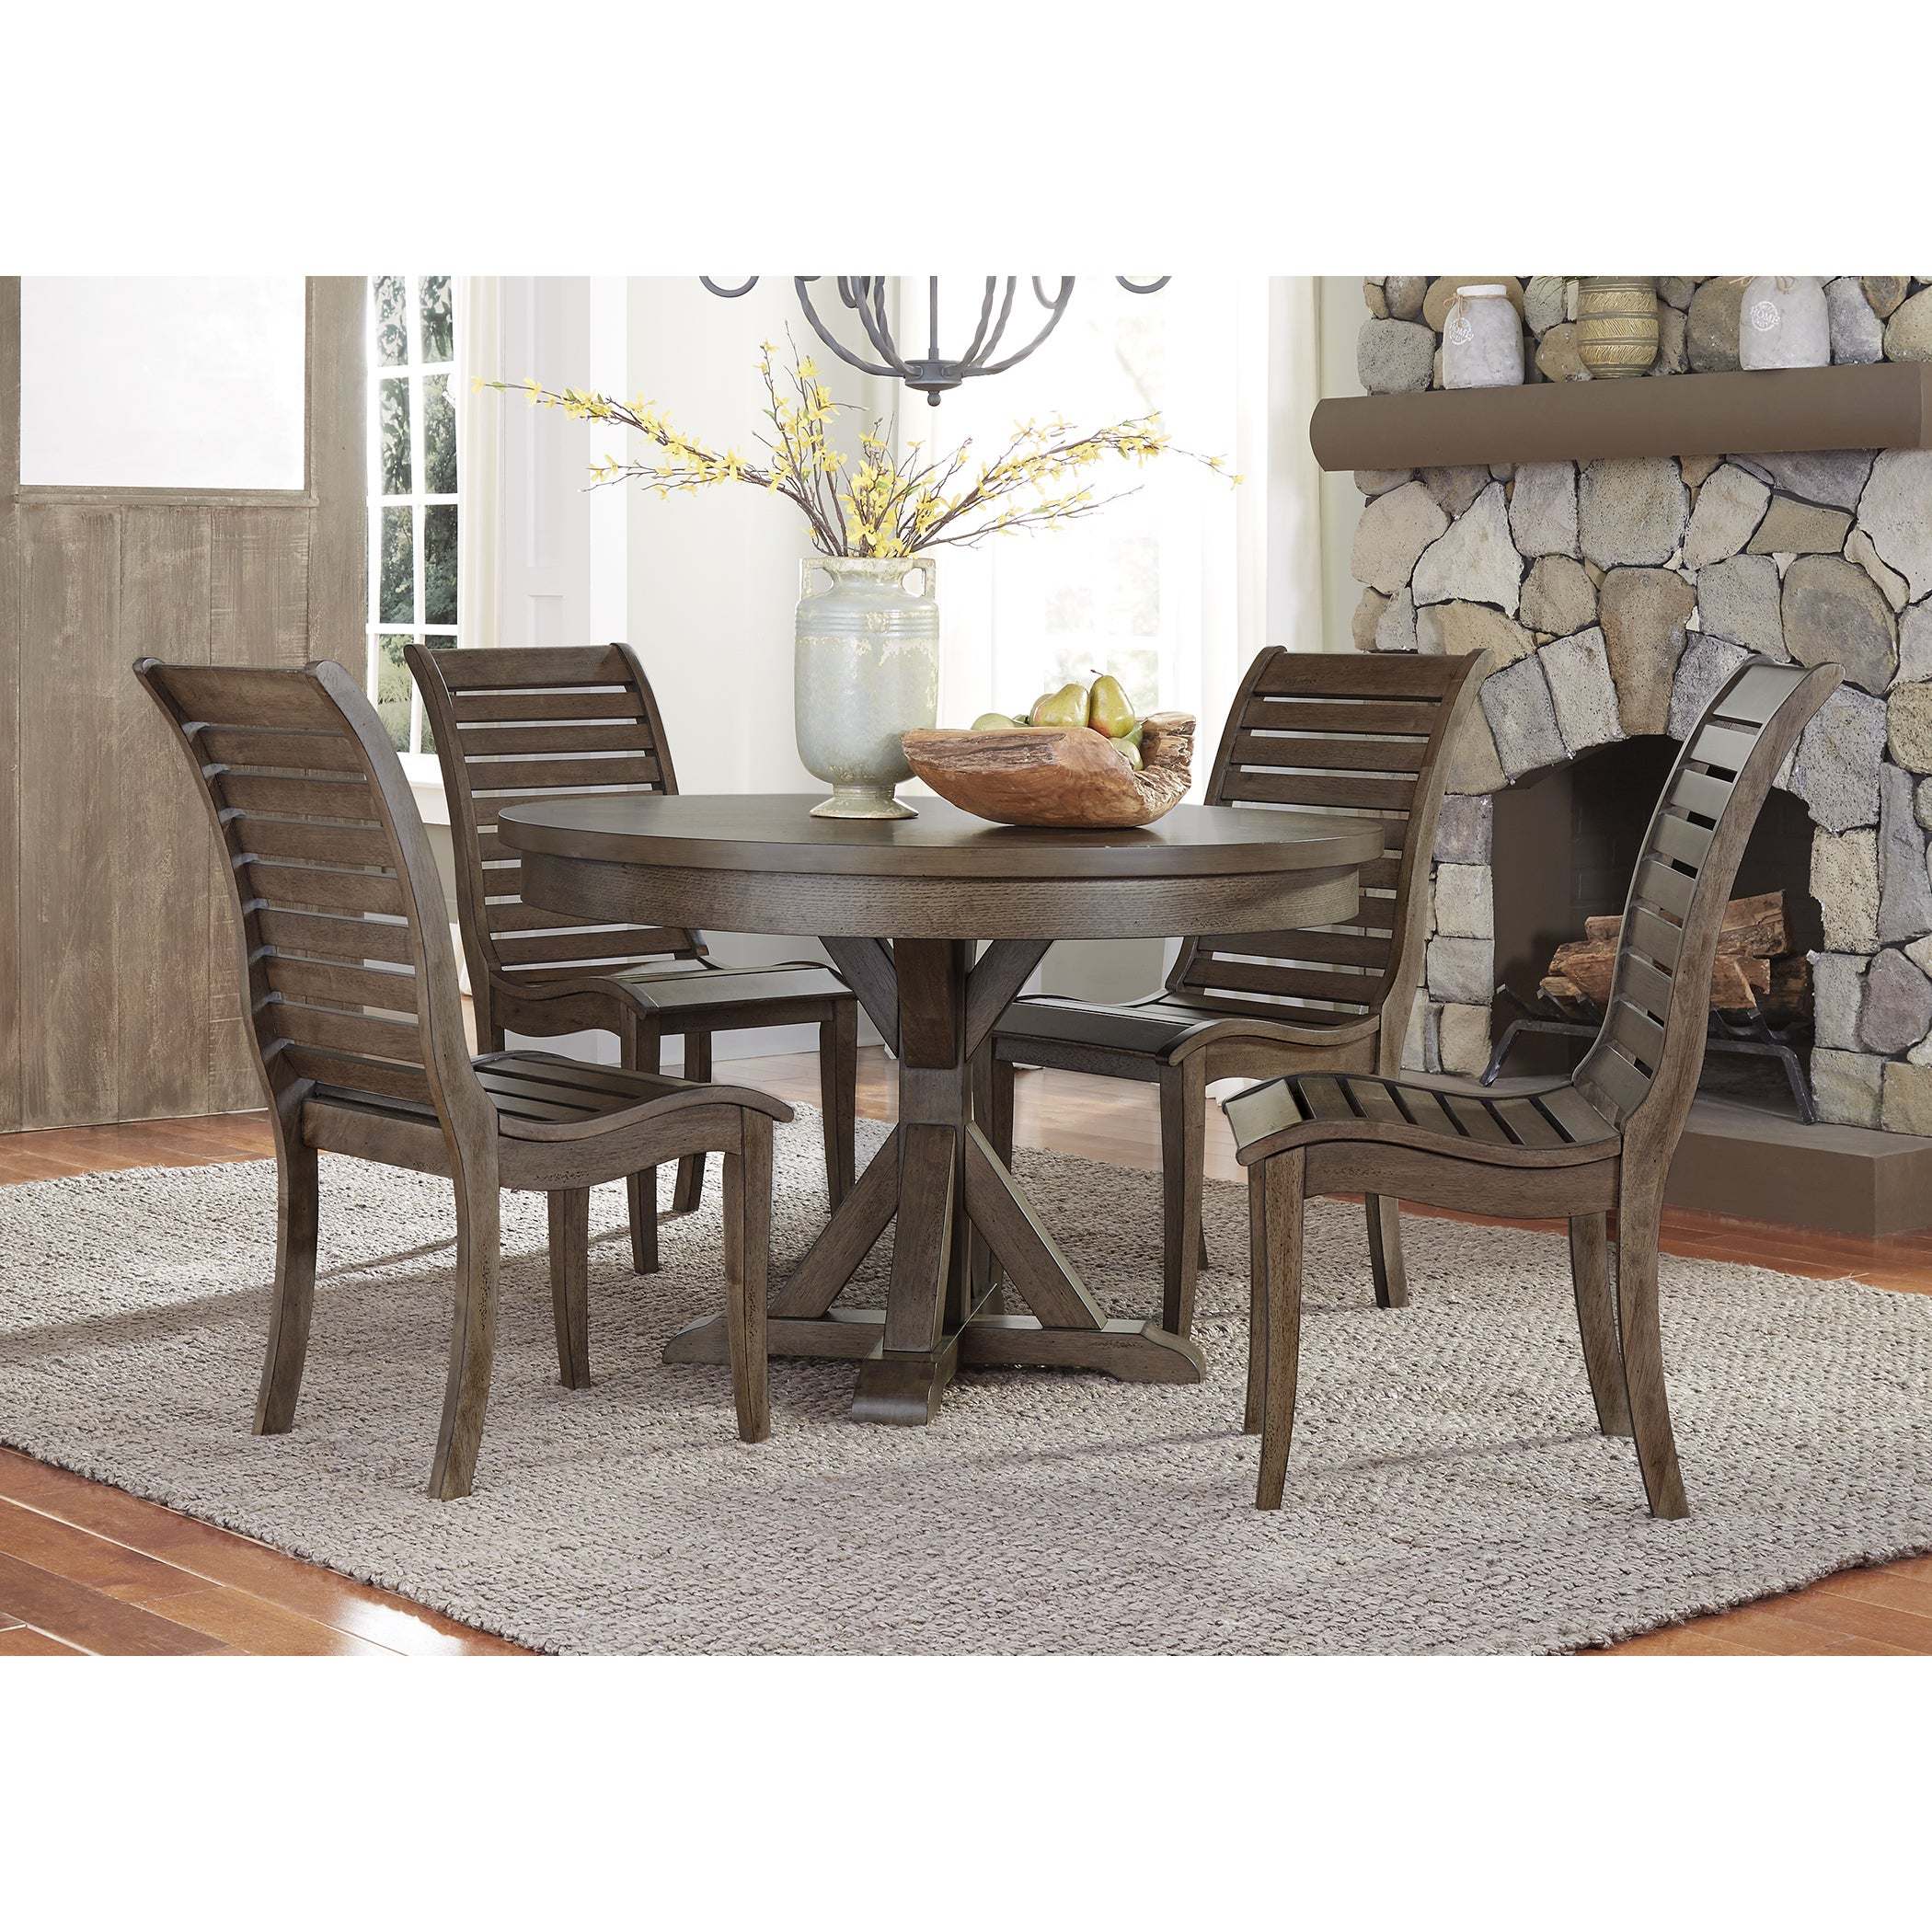 Bayside Washed Chestnut 48x48 Round Table Free Shipping Today